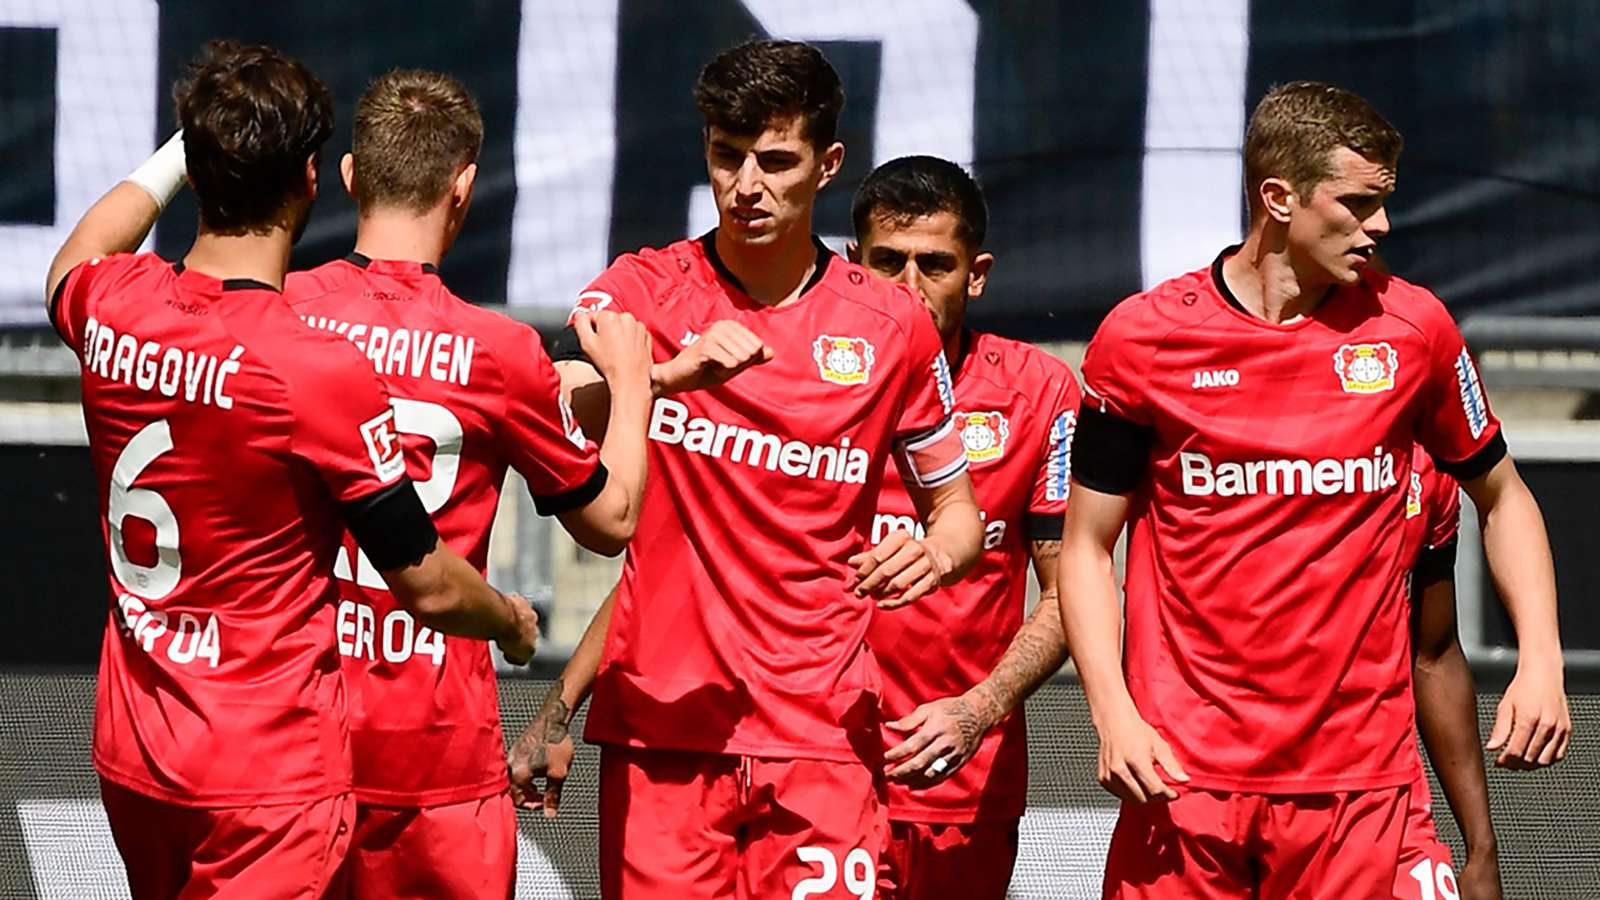 Kai Havertz Bayer Leverkusen celebrating 2019-20